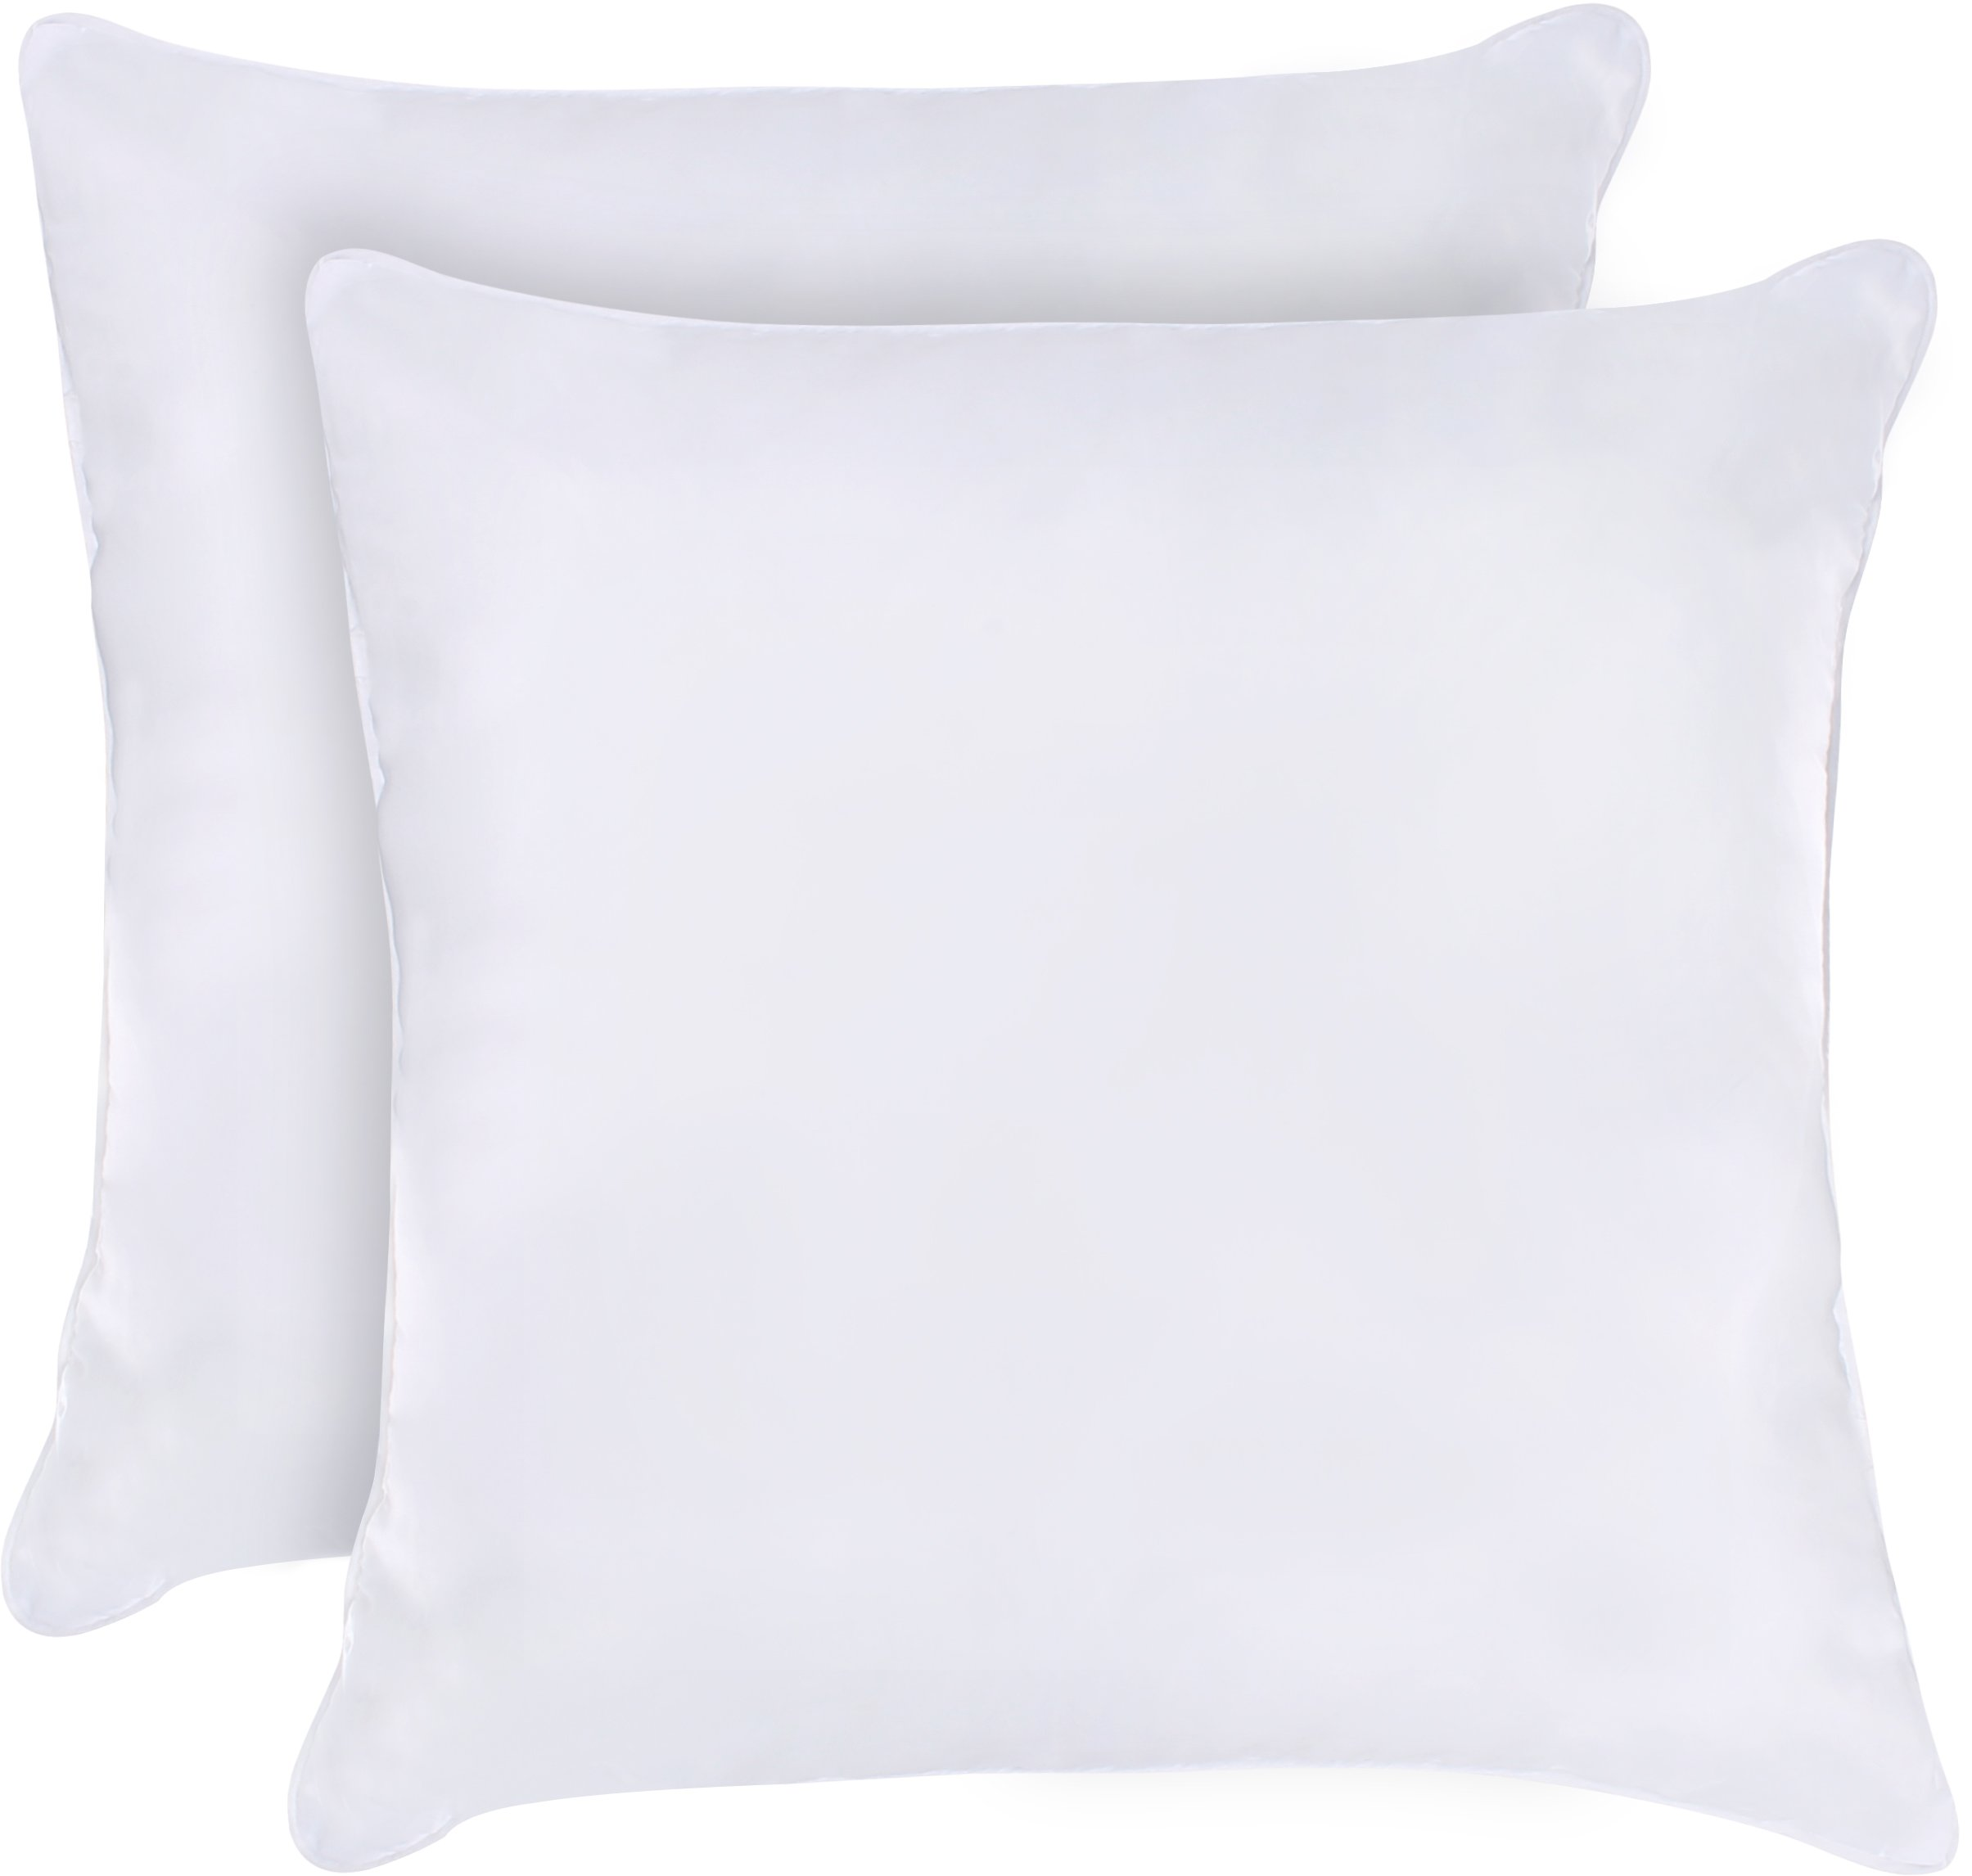 Utopia Bedding Decorative Pillow Insert (Pack of 2, White) - Square 18 x 18 Inches Sofa and Bed Pillows by Utopia Bedding